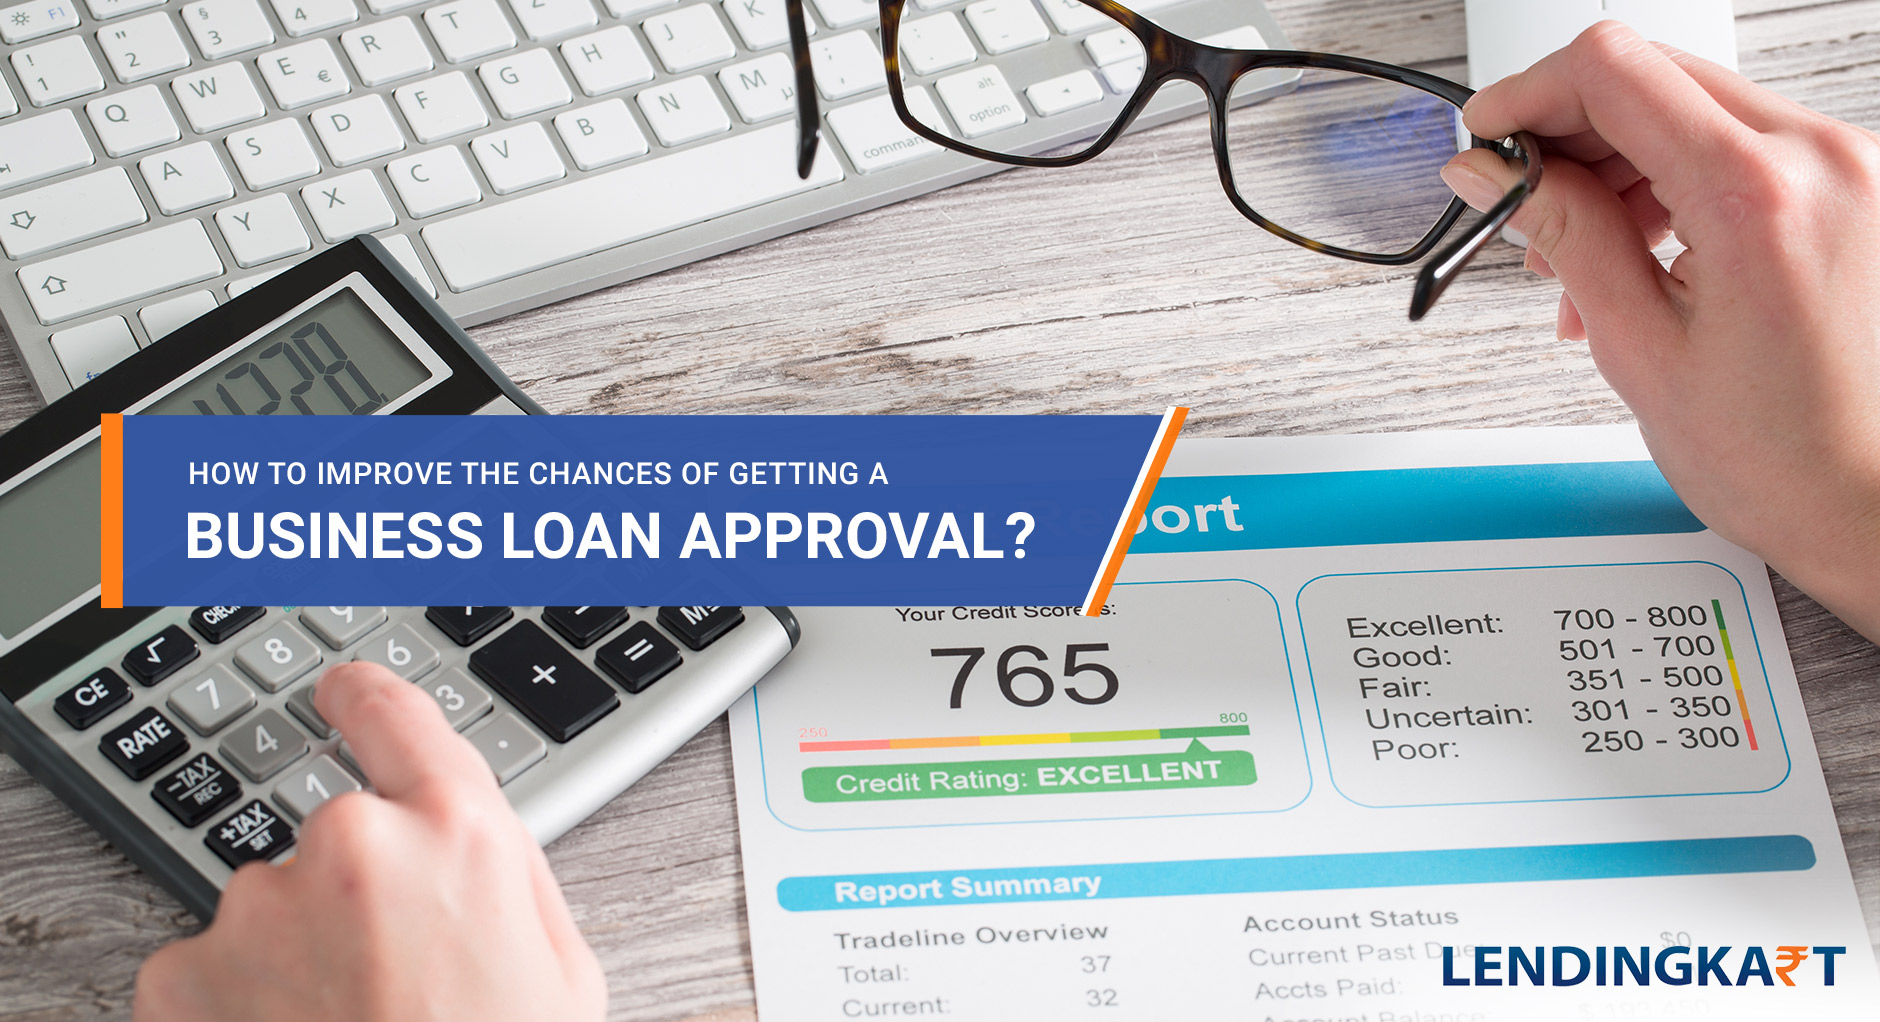 how to improve the chances of getting a business loan approval